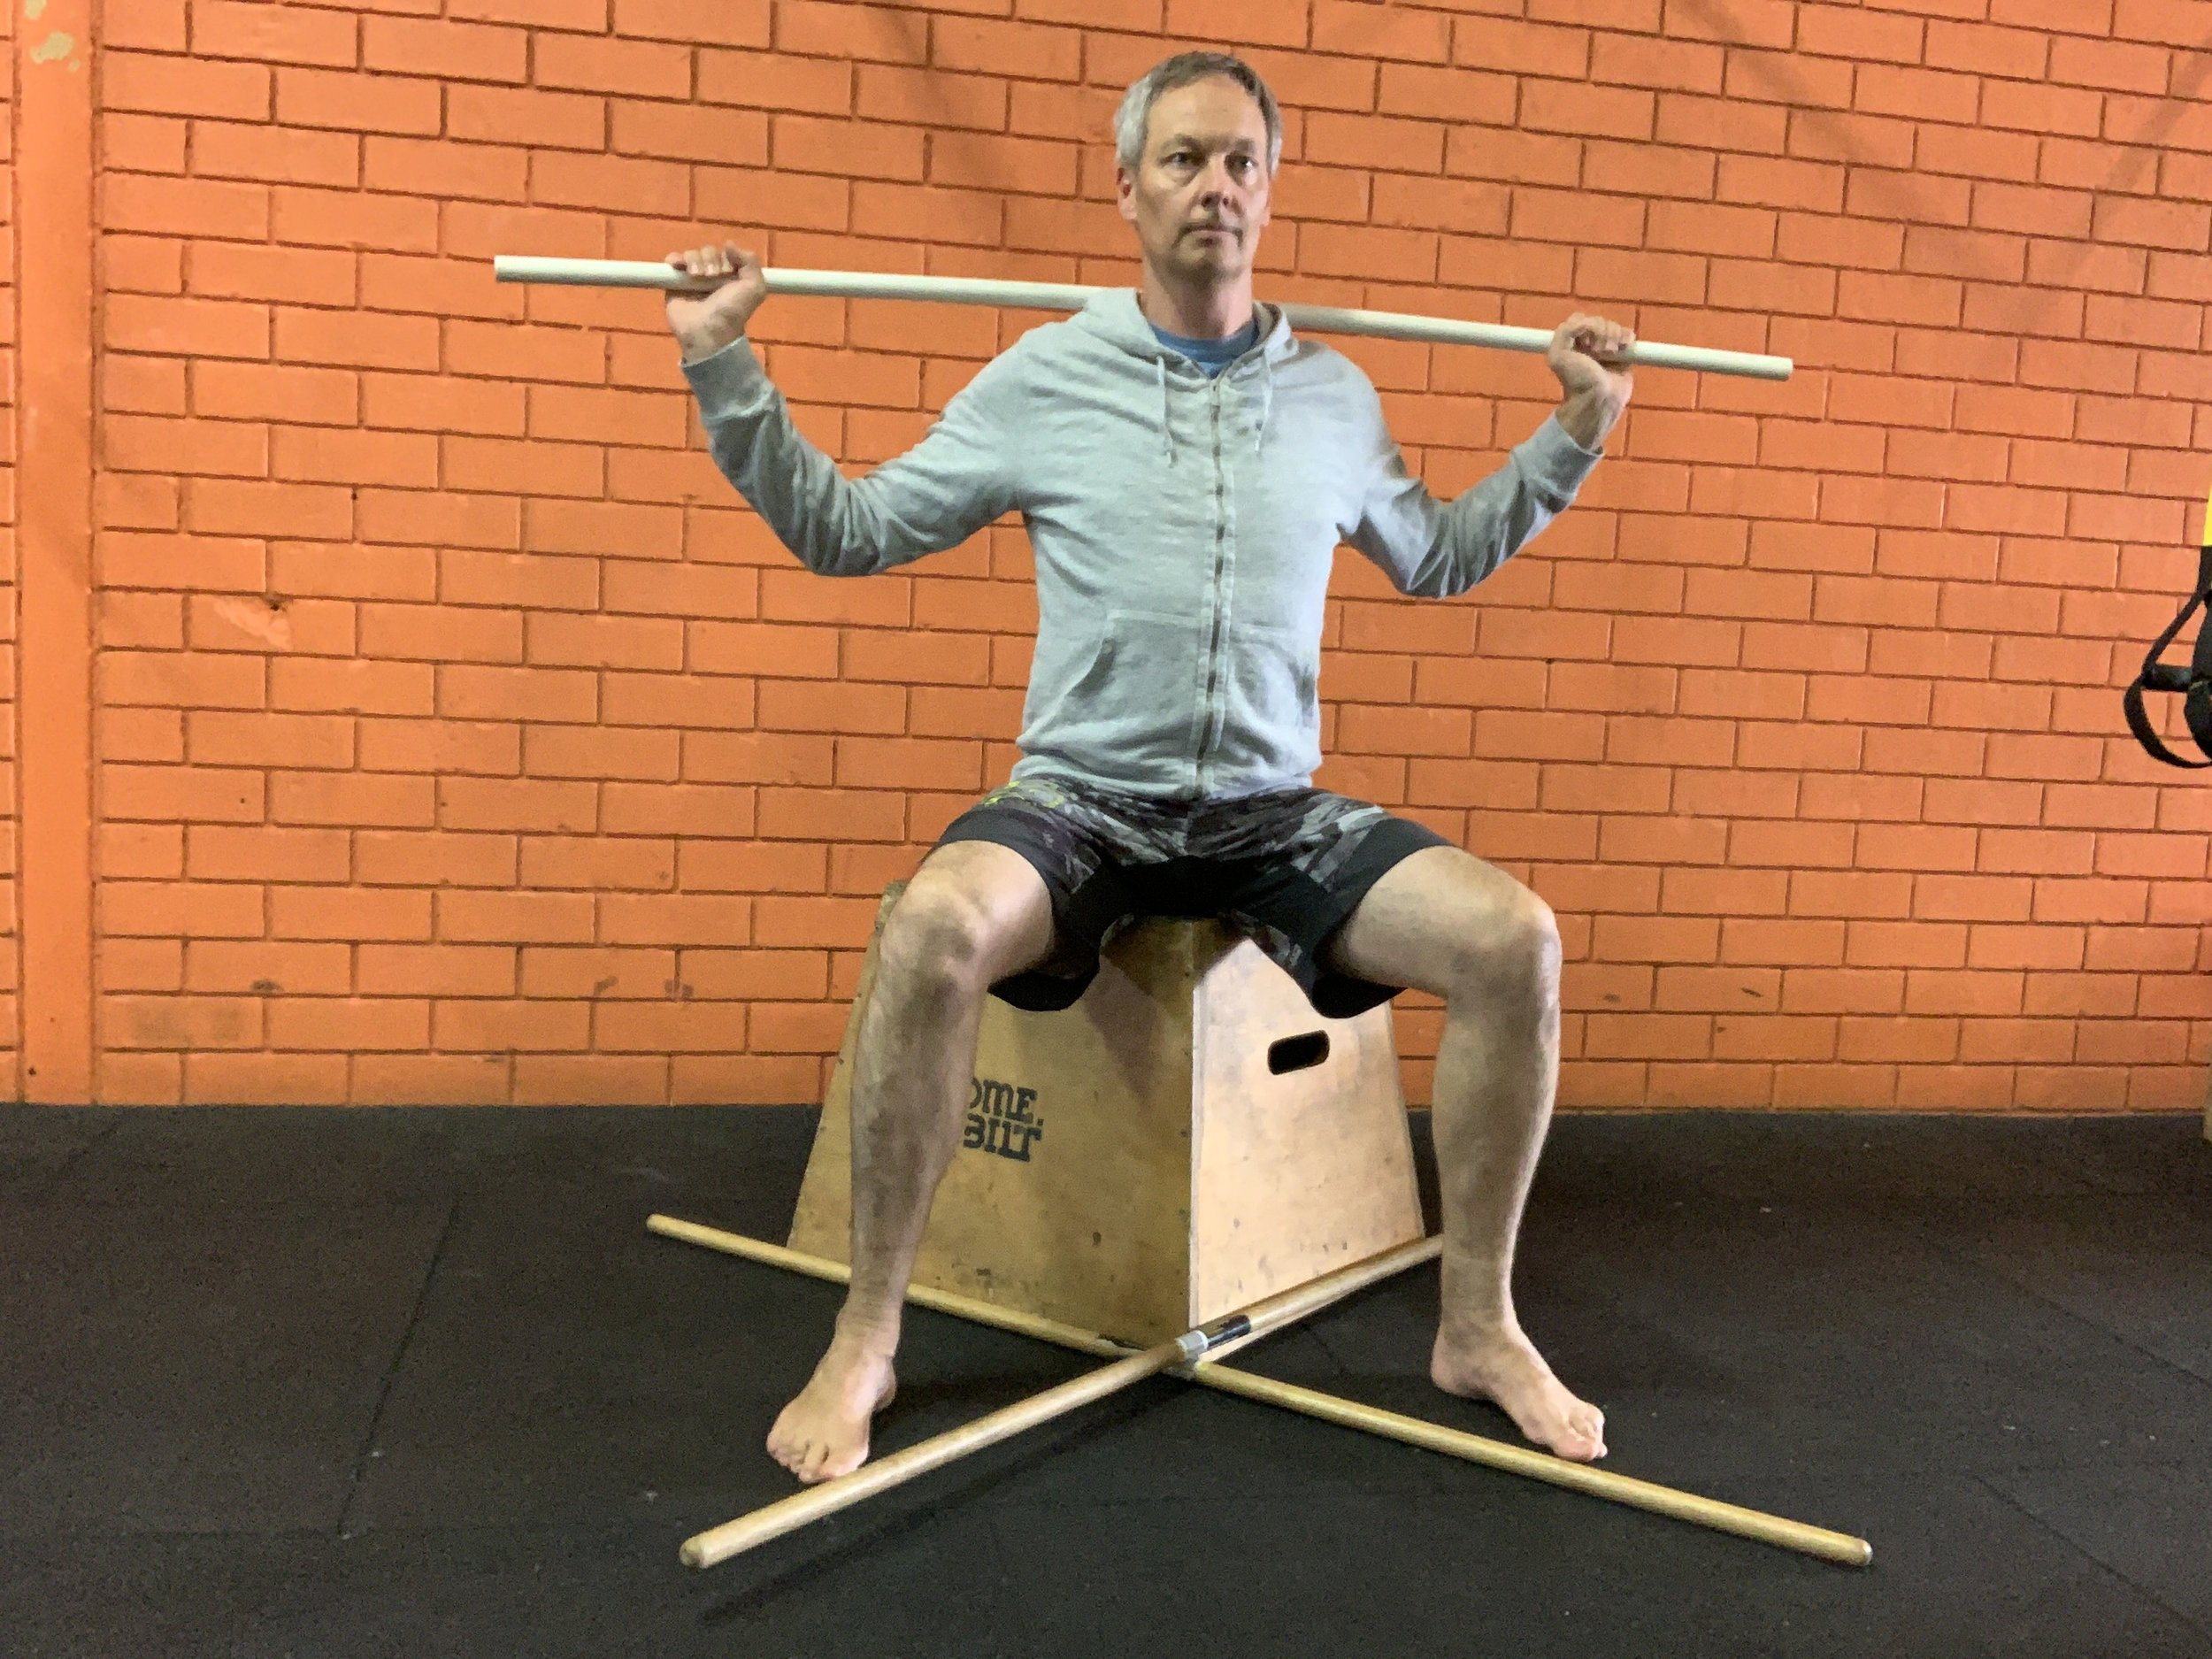 Sit on a box or bench, with two sticks at right angles at your feet, so that they point to the diagonals. This creates 45 degree lines from your midline.